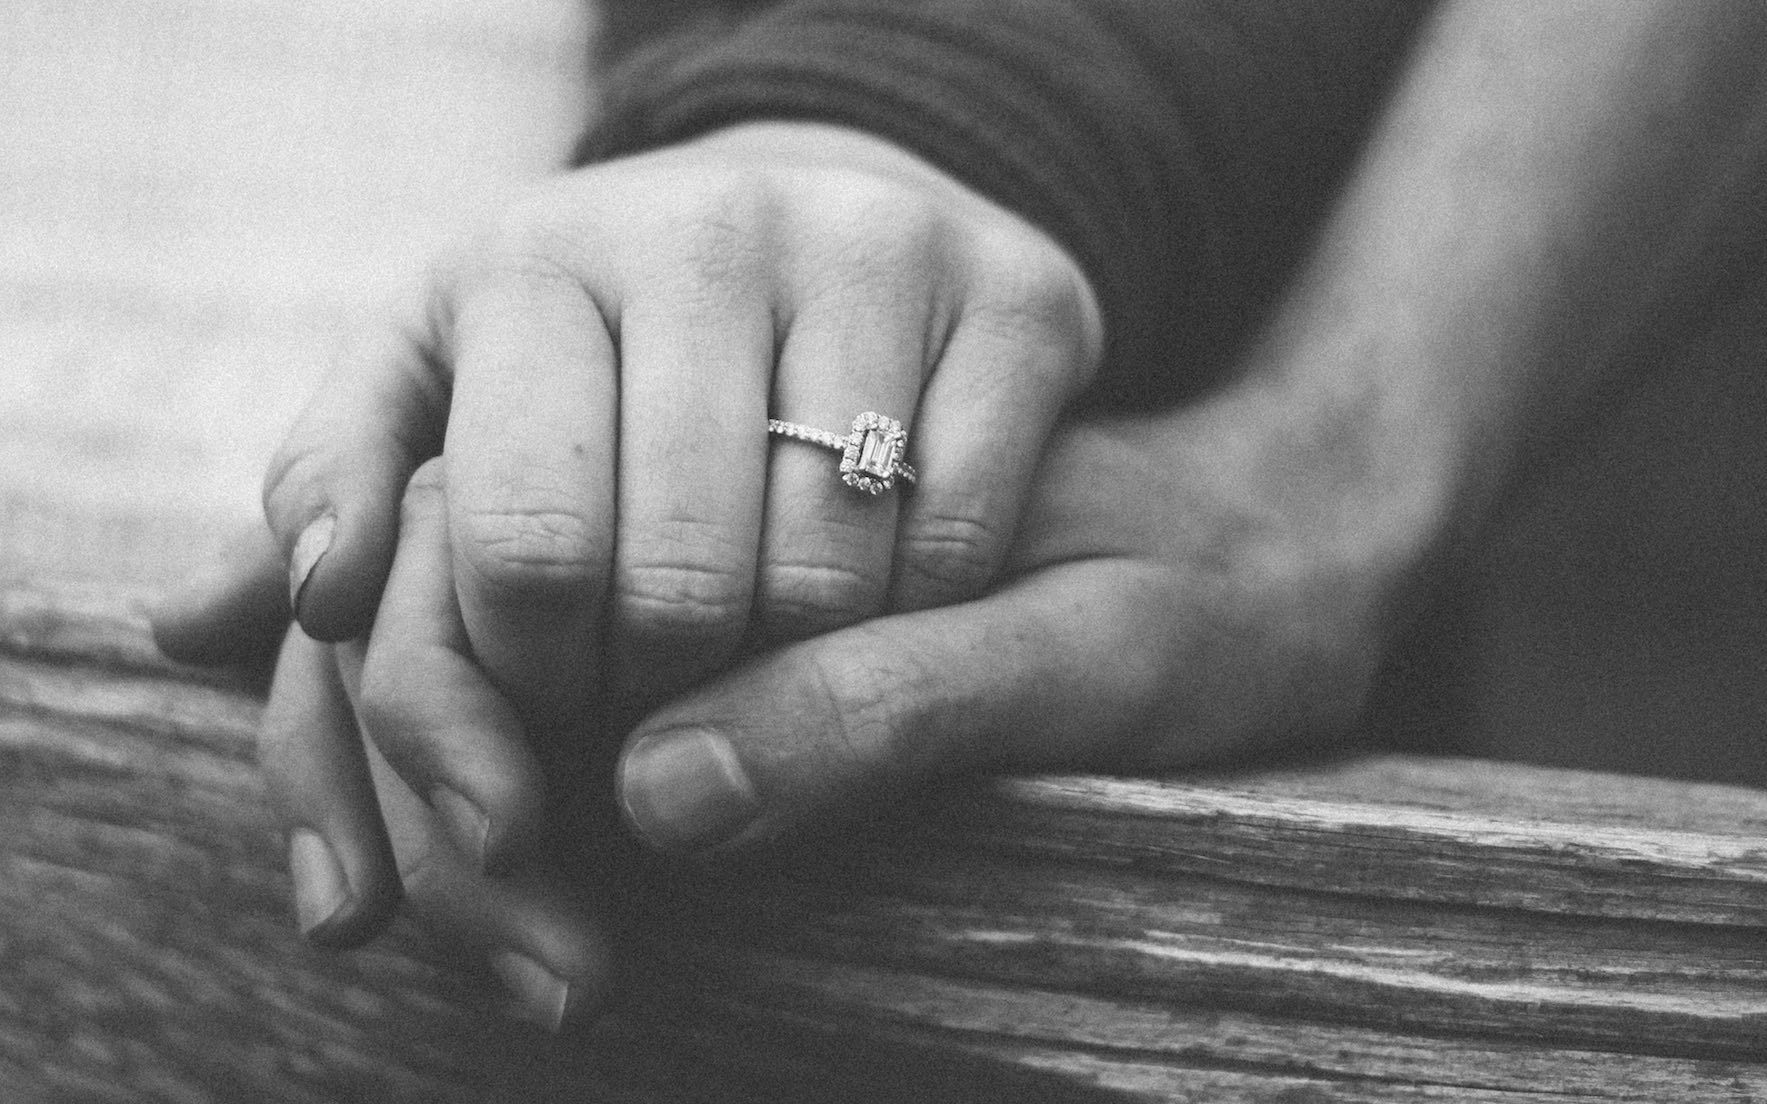 Marriage can be negatively affected by finances